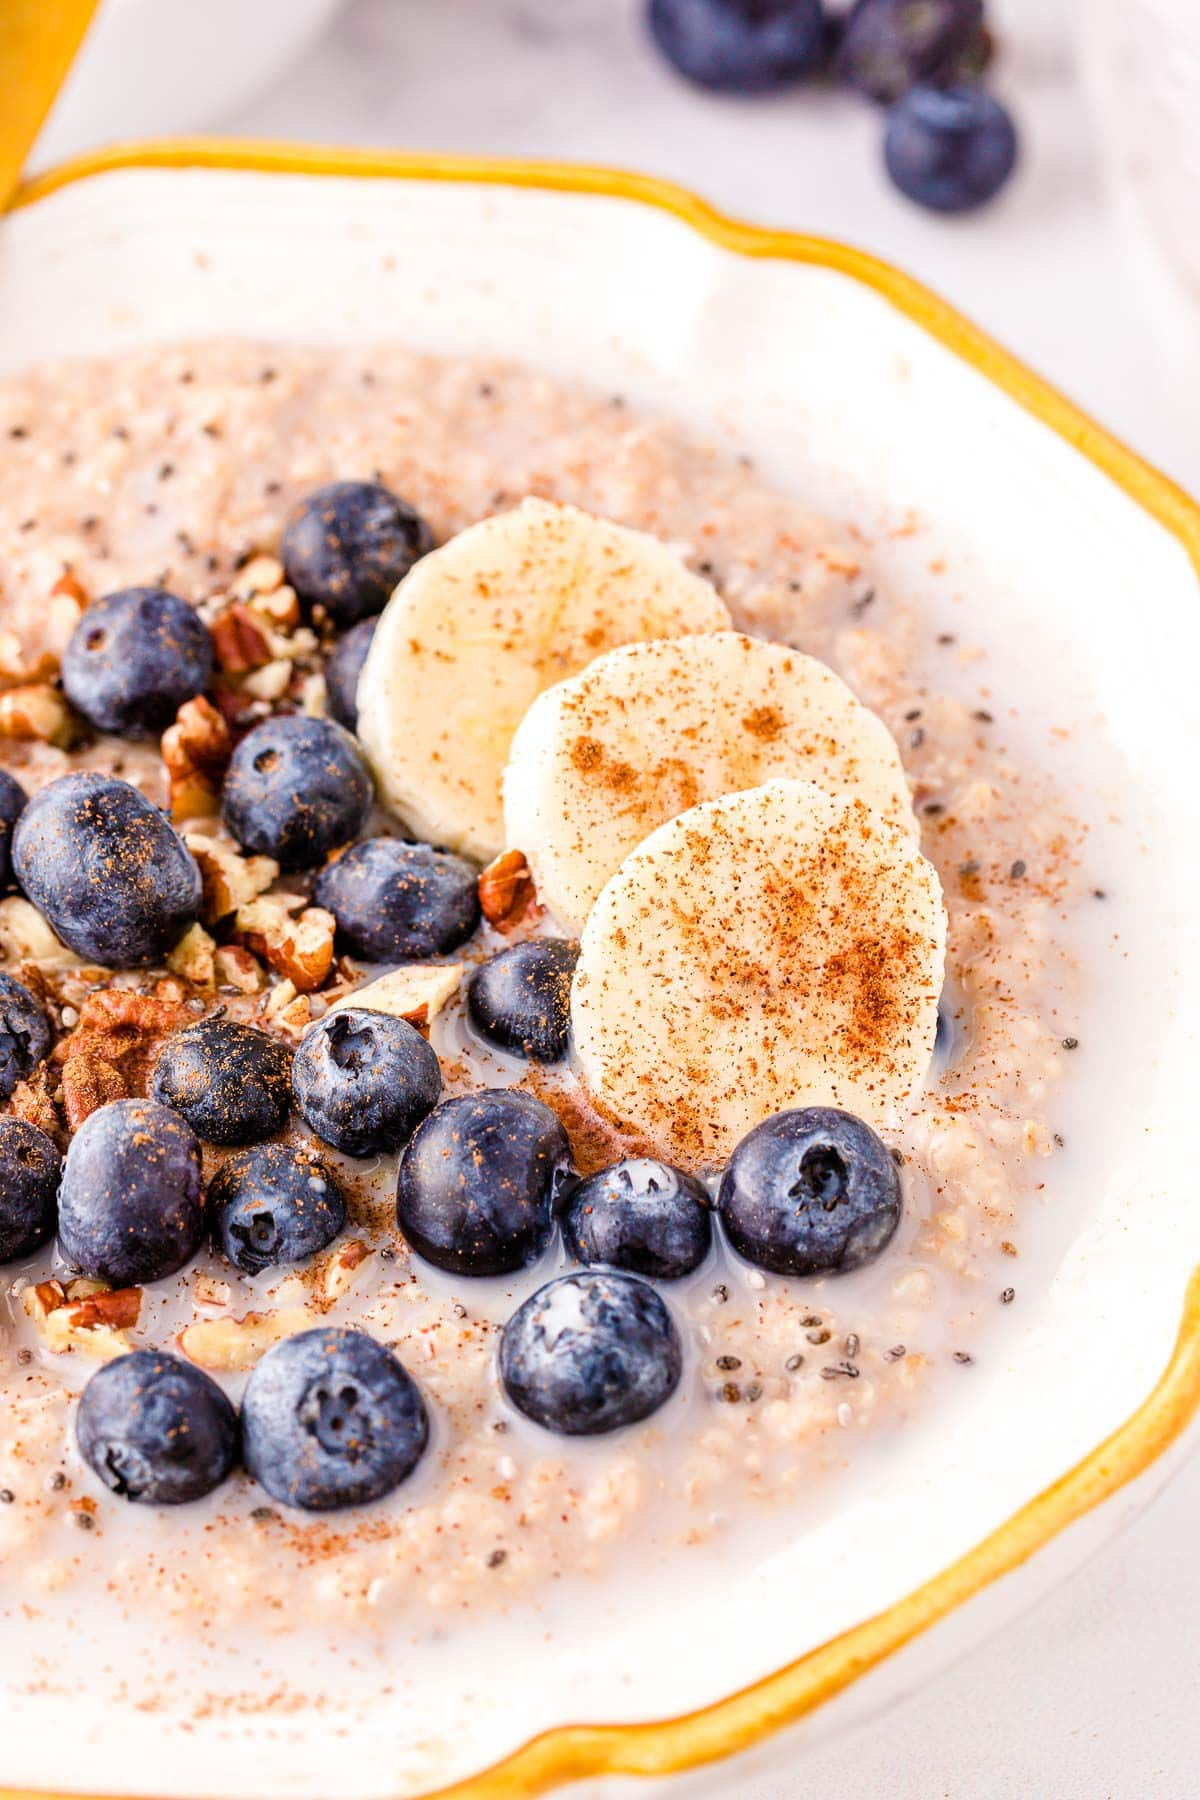 close up look at steel cut oats in bowl topped with blueberries, banana slices and pecans.